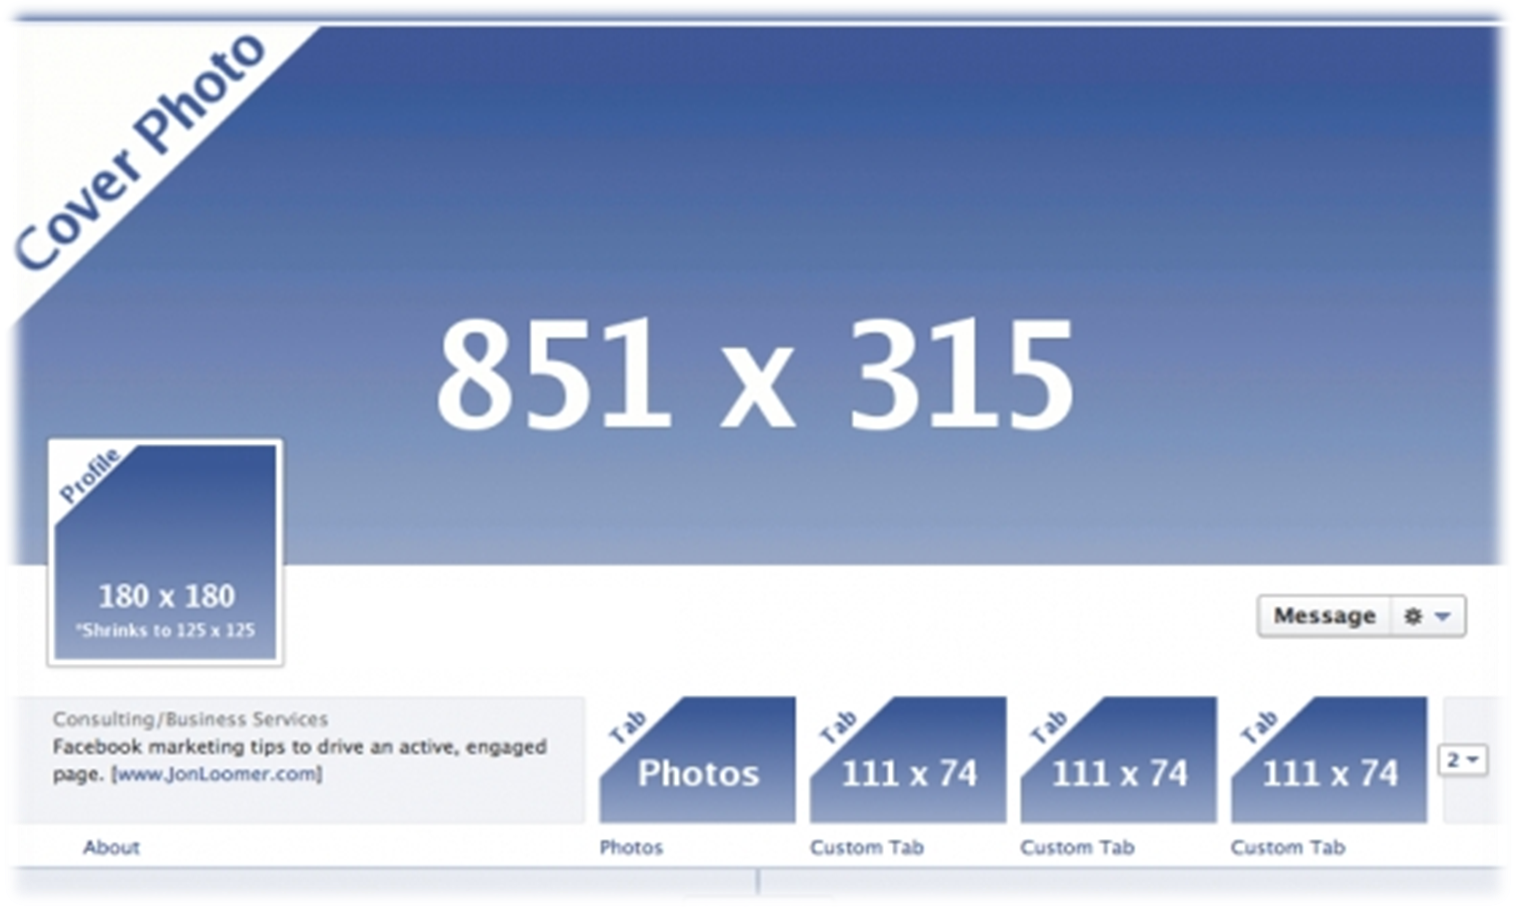 17 Best ideas about Facebook Cover Image Size on Pinterest | Cover ...